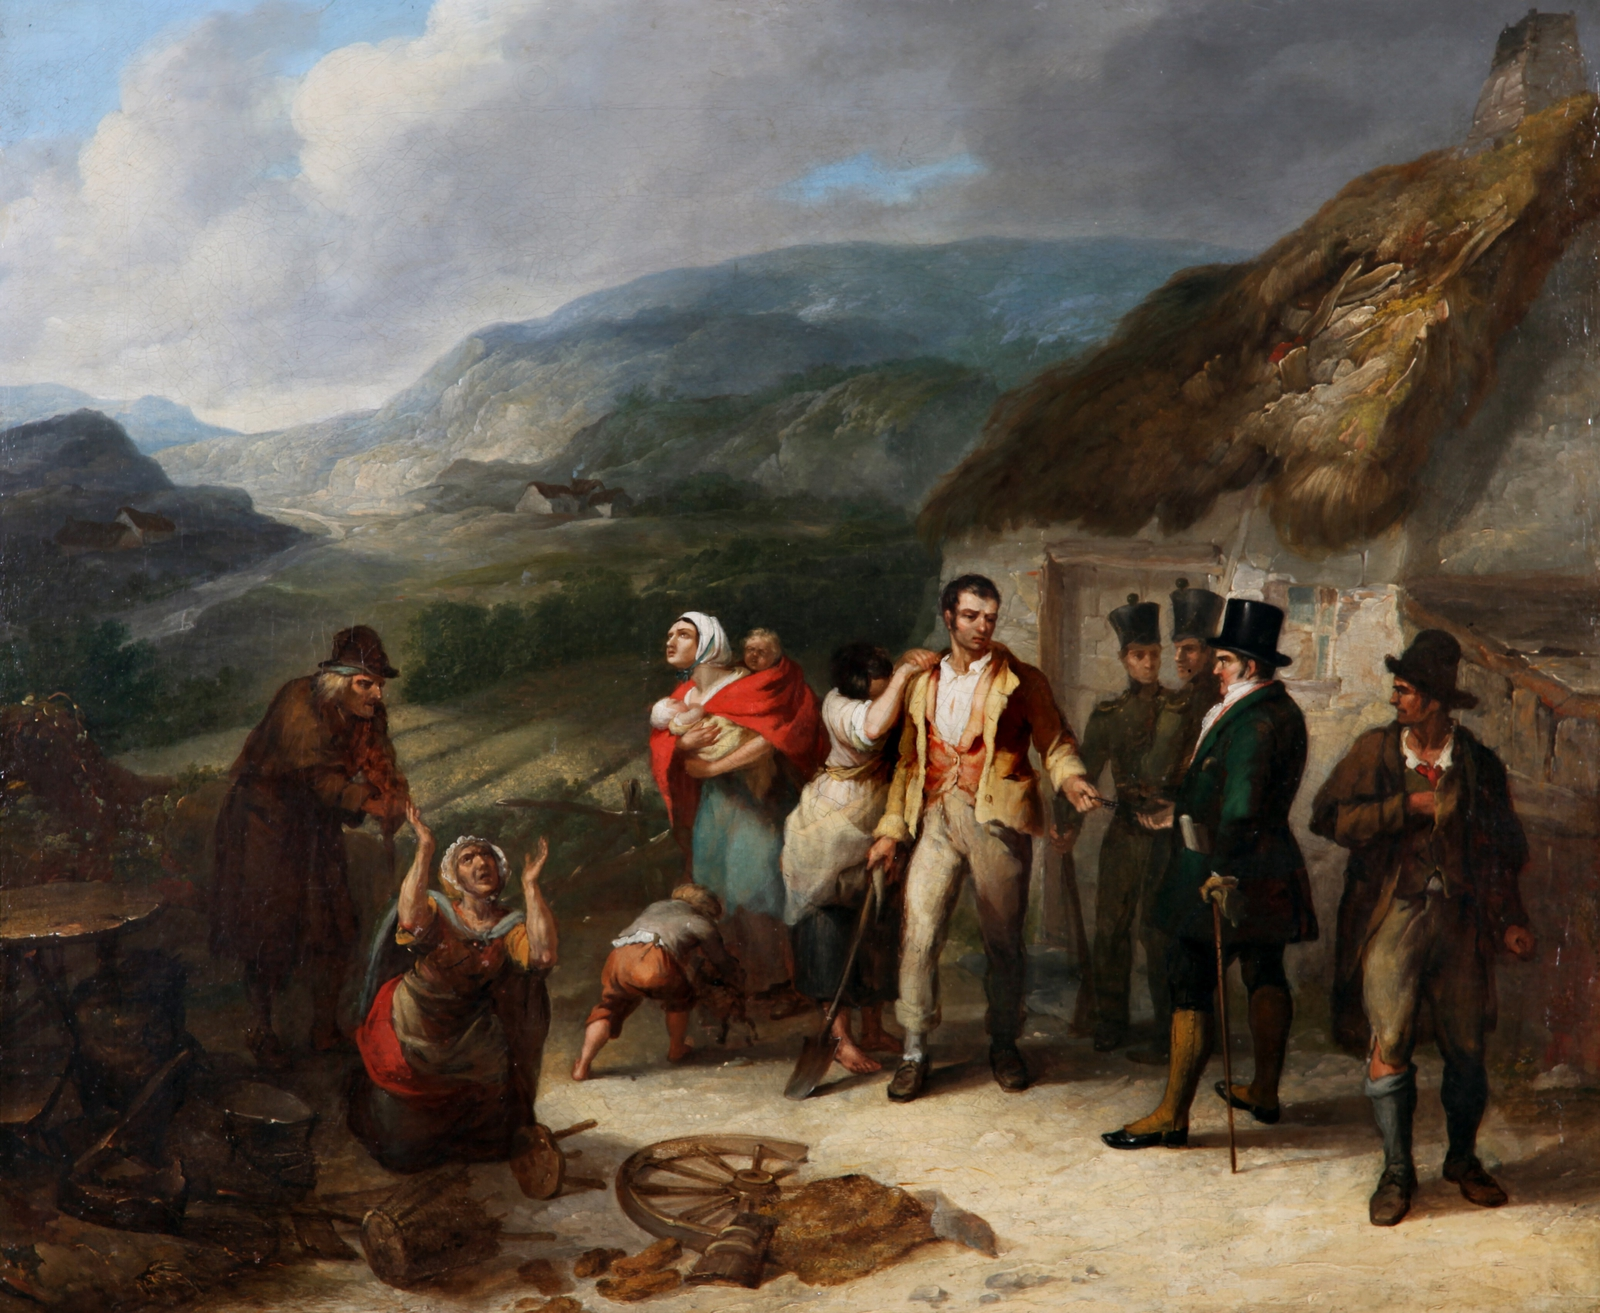 Image - Daniel Macdonald's painting The Eviction, (c.1850). From the collection Crawford Art Gallery, Cork.